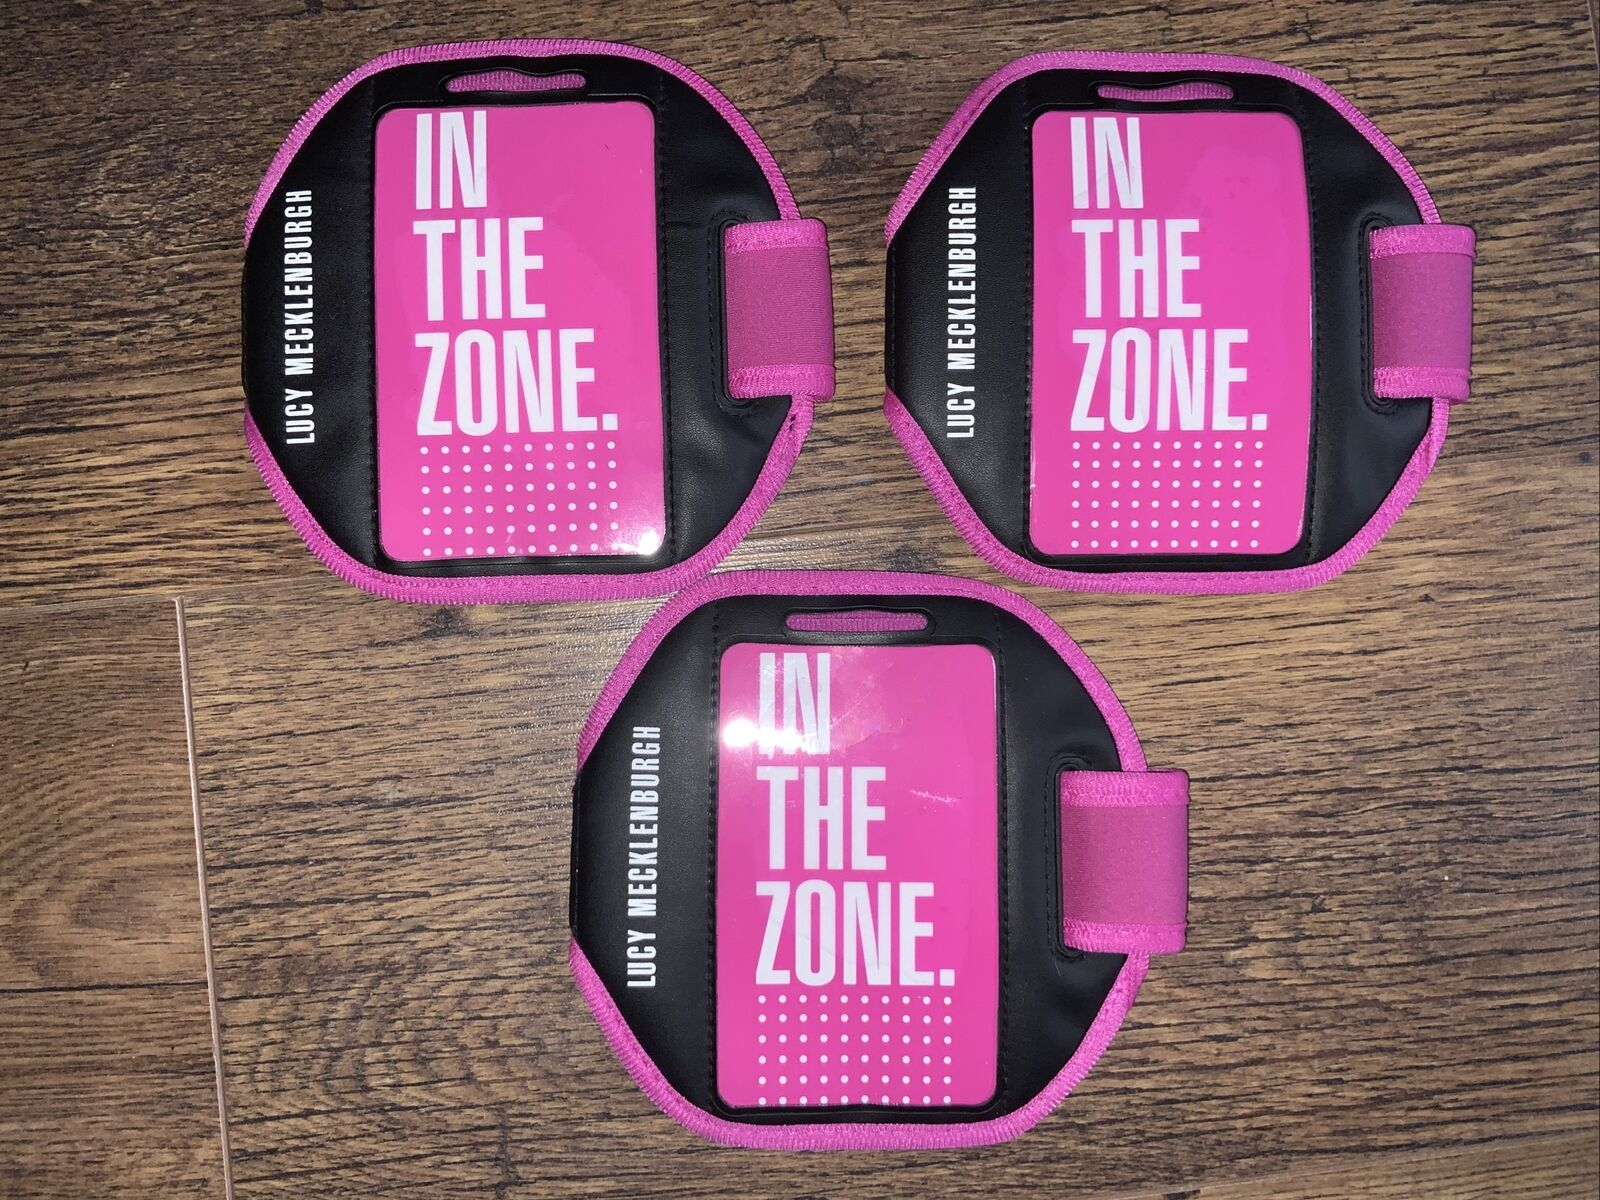 lucy mecklenburgh In The Zone Phone Armbands X3